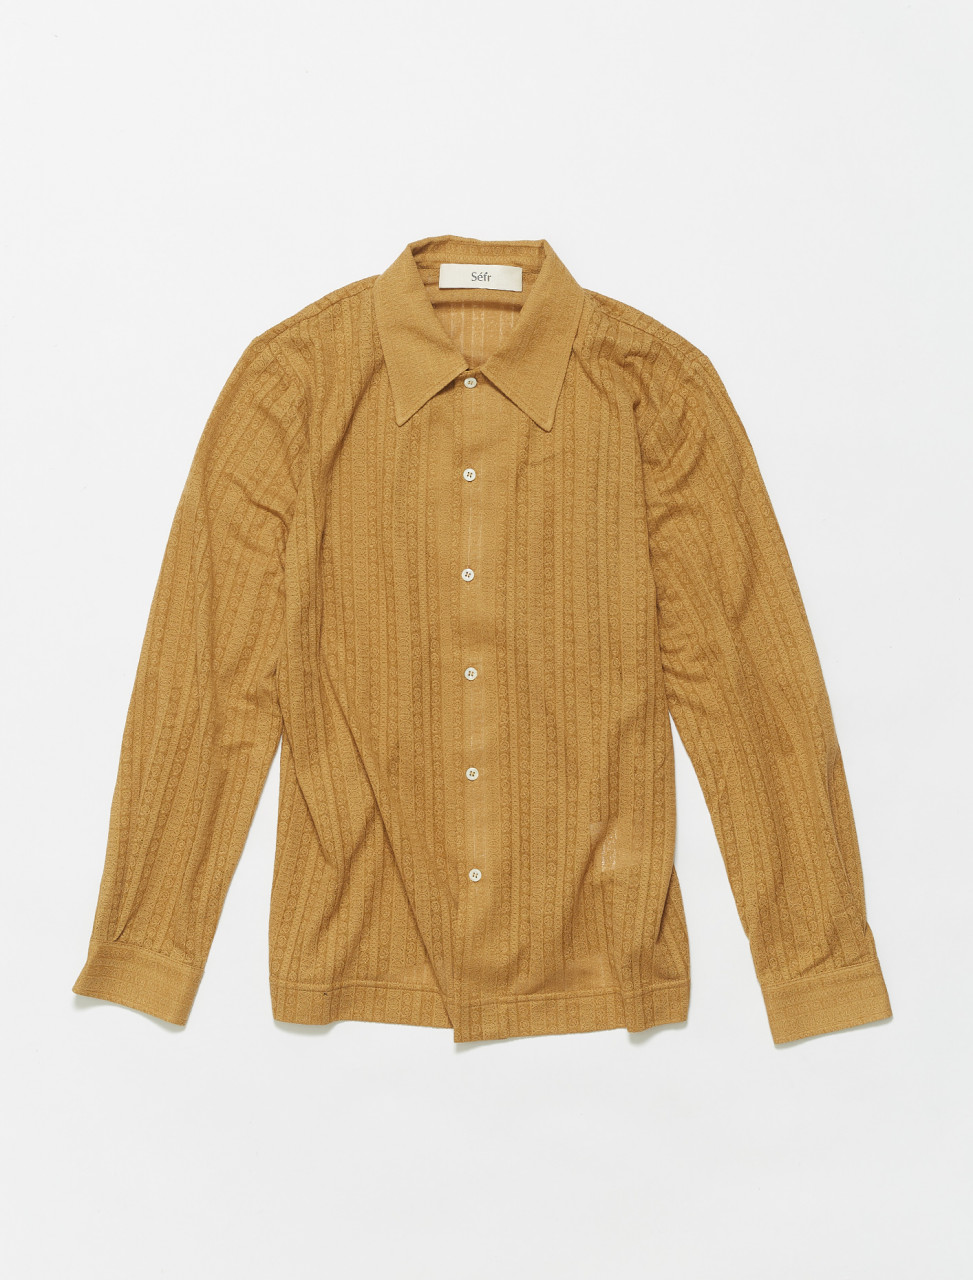 RS-MY SEFR RIPLEY SHIRT MEDALLION YELLOW